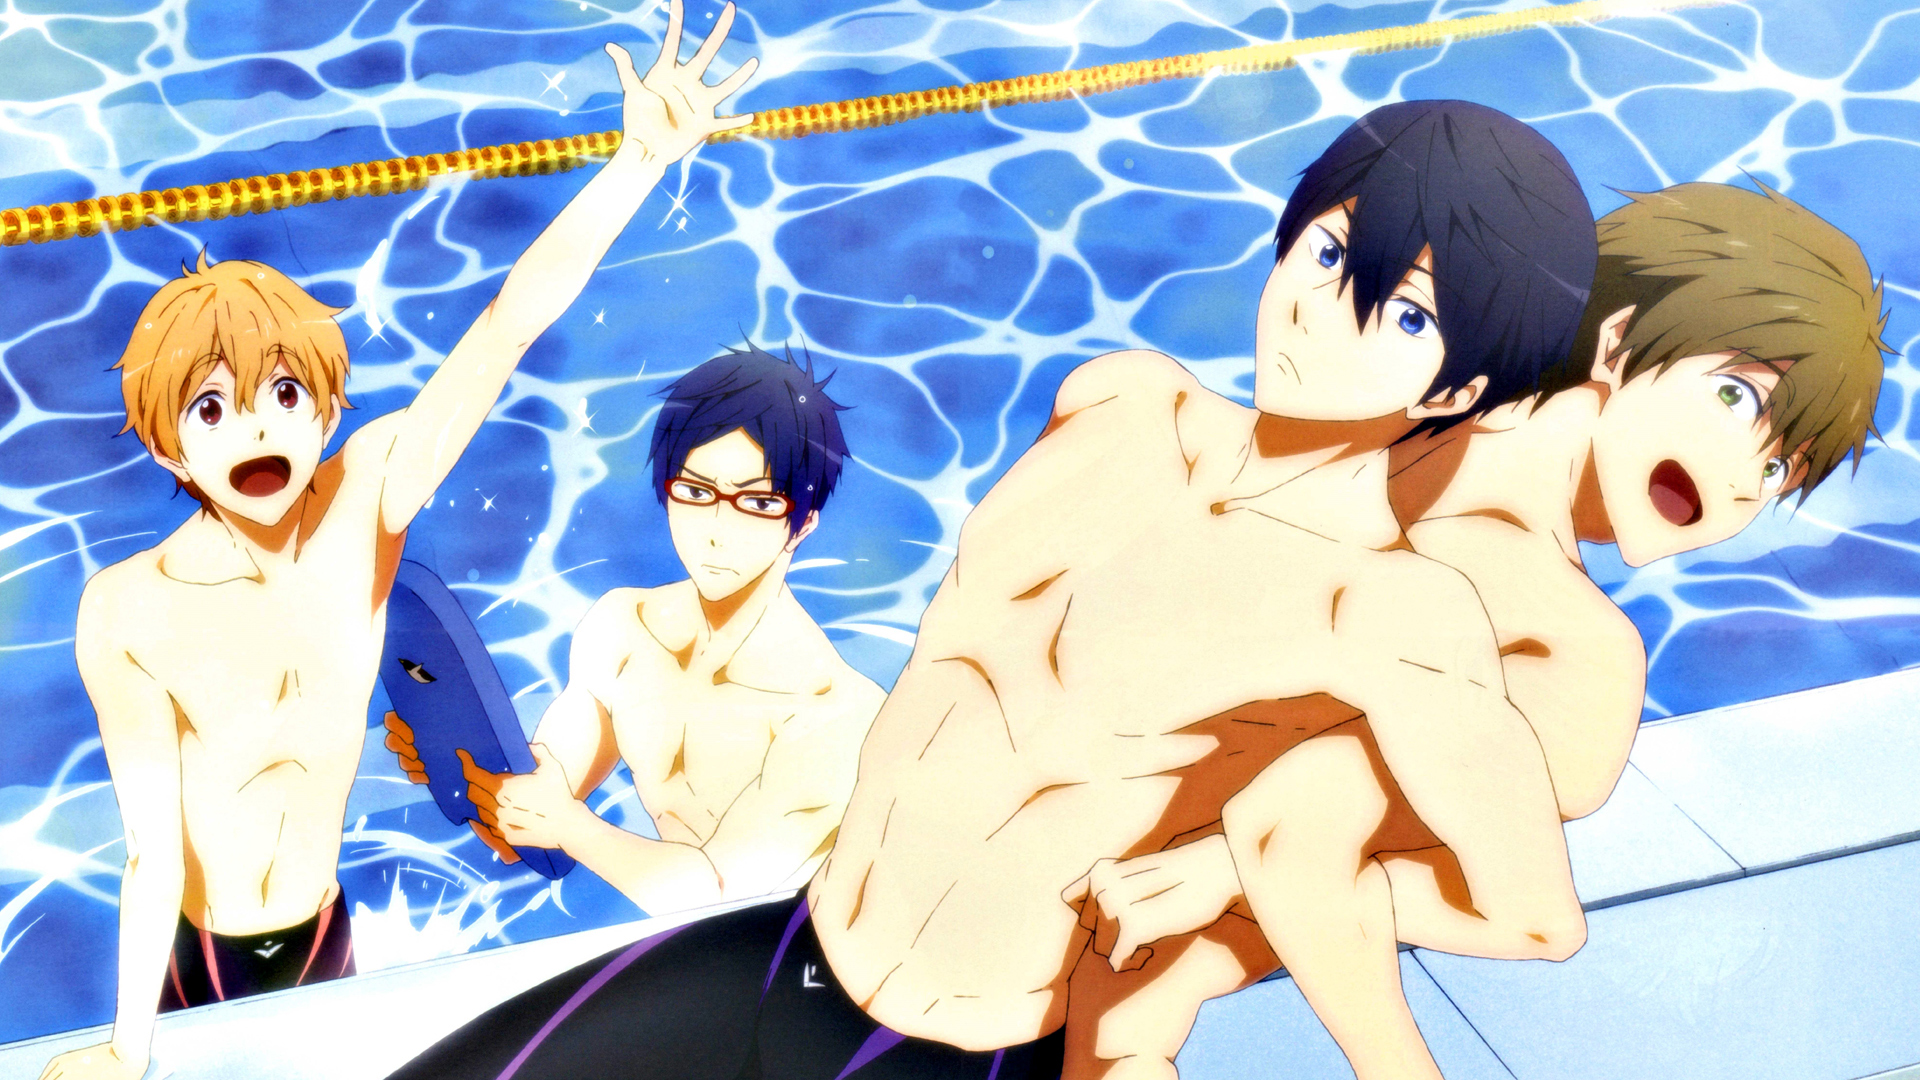 free! anime boys wallpaper hd